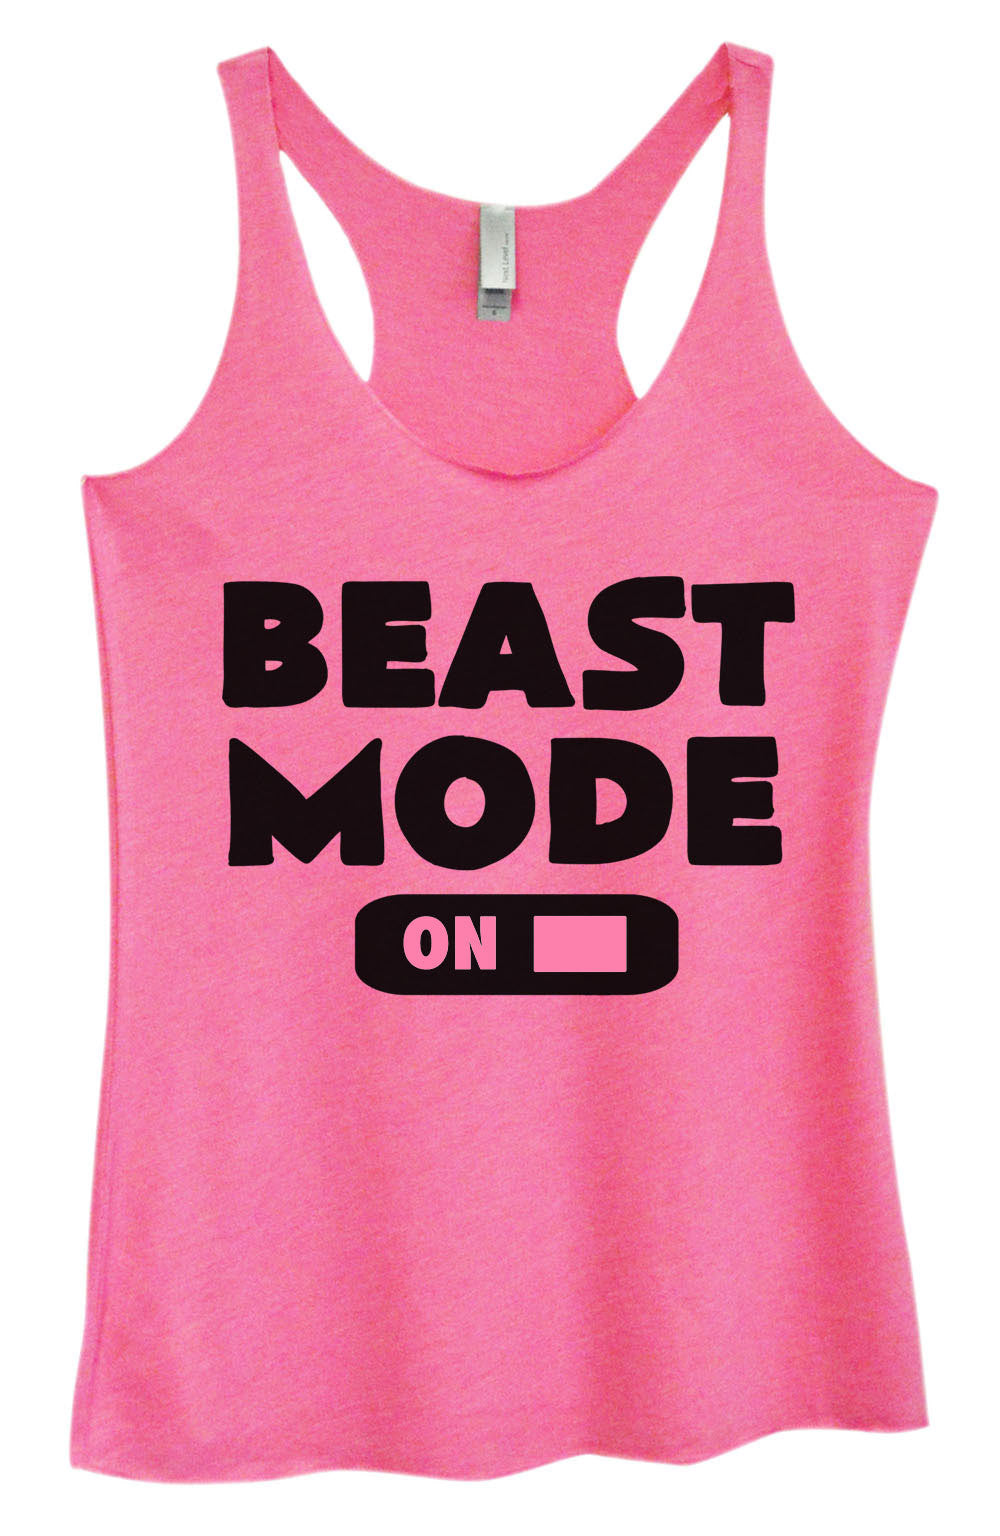 Womens Fashion Triblend Tank Top - Beast Mode On - Tri-764 - Funny Shirts Tank Tops Burnouts and Triblends  - 3